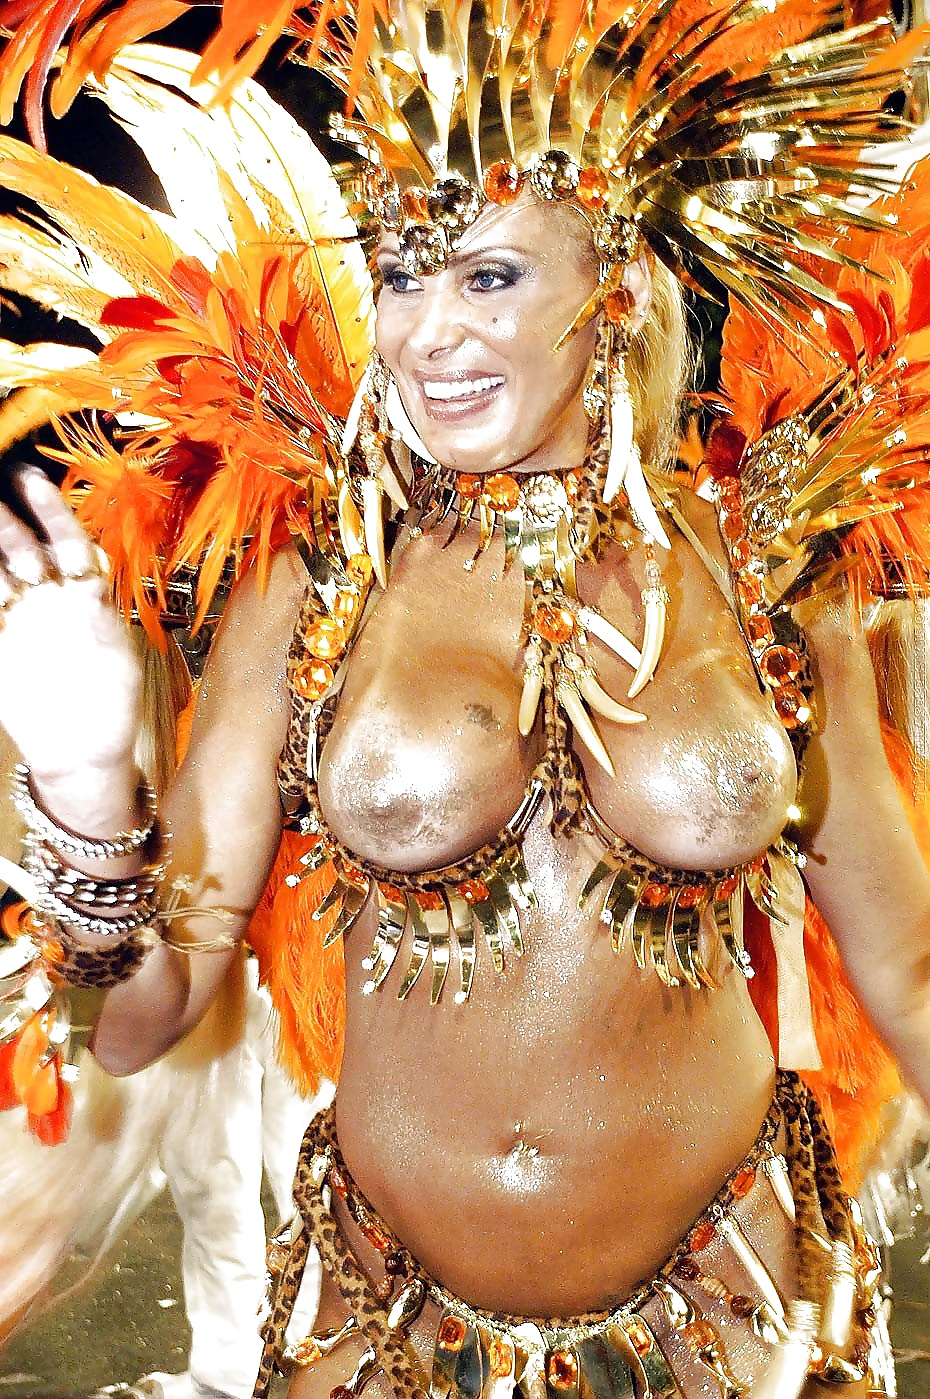 Wild nude carnival dancers — pic 13